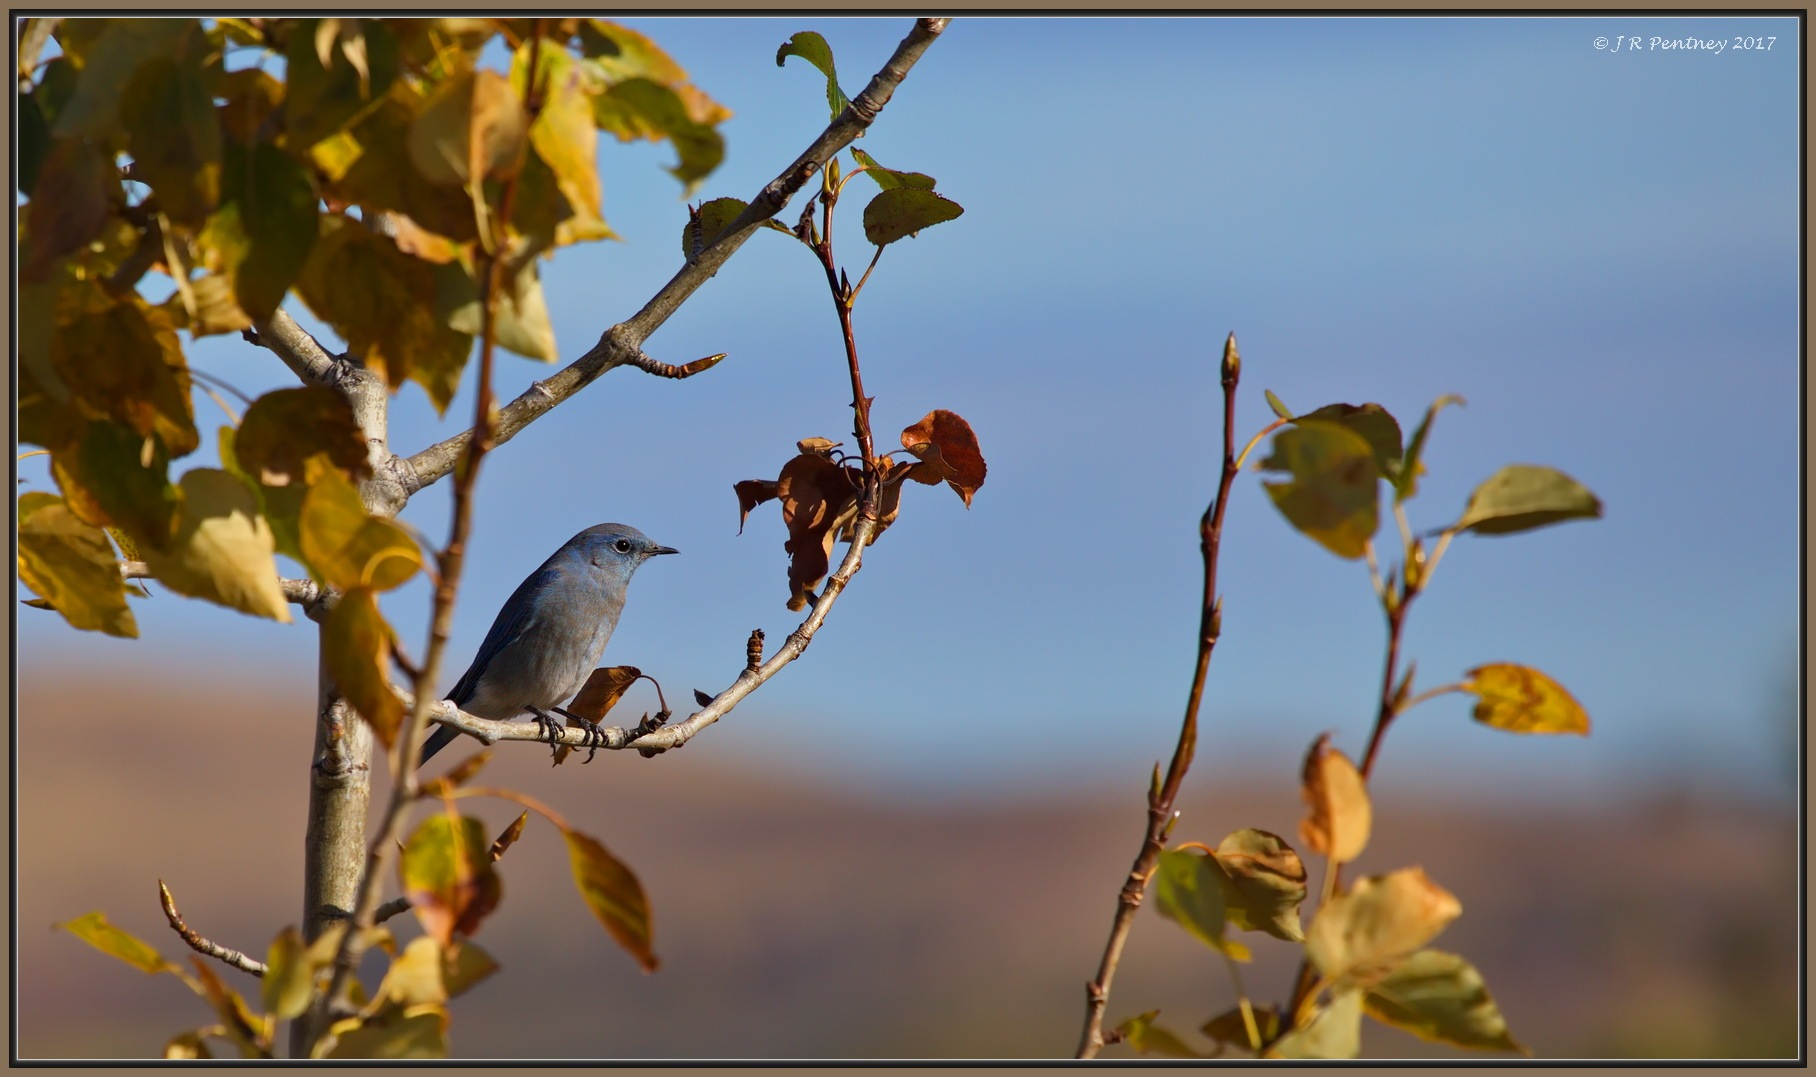 Mountain Bluebird in Fall foliage by CrzyCnuk